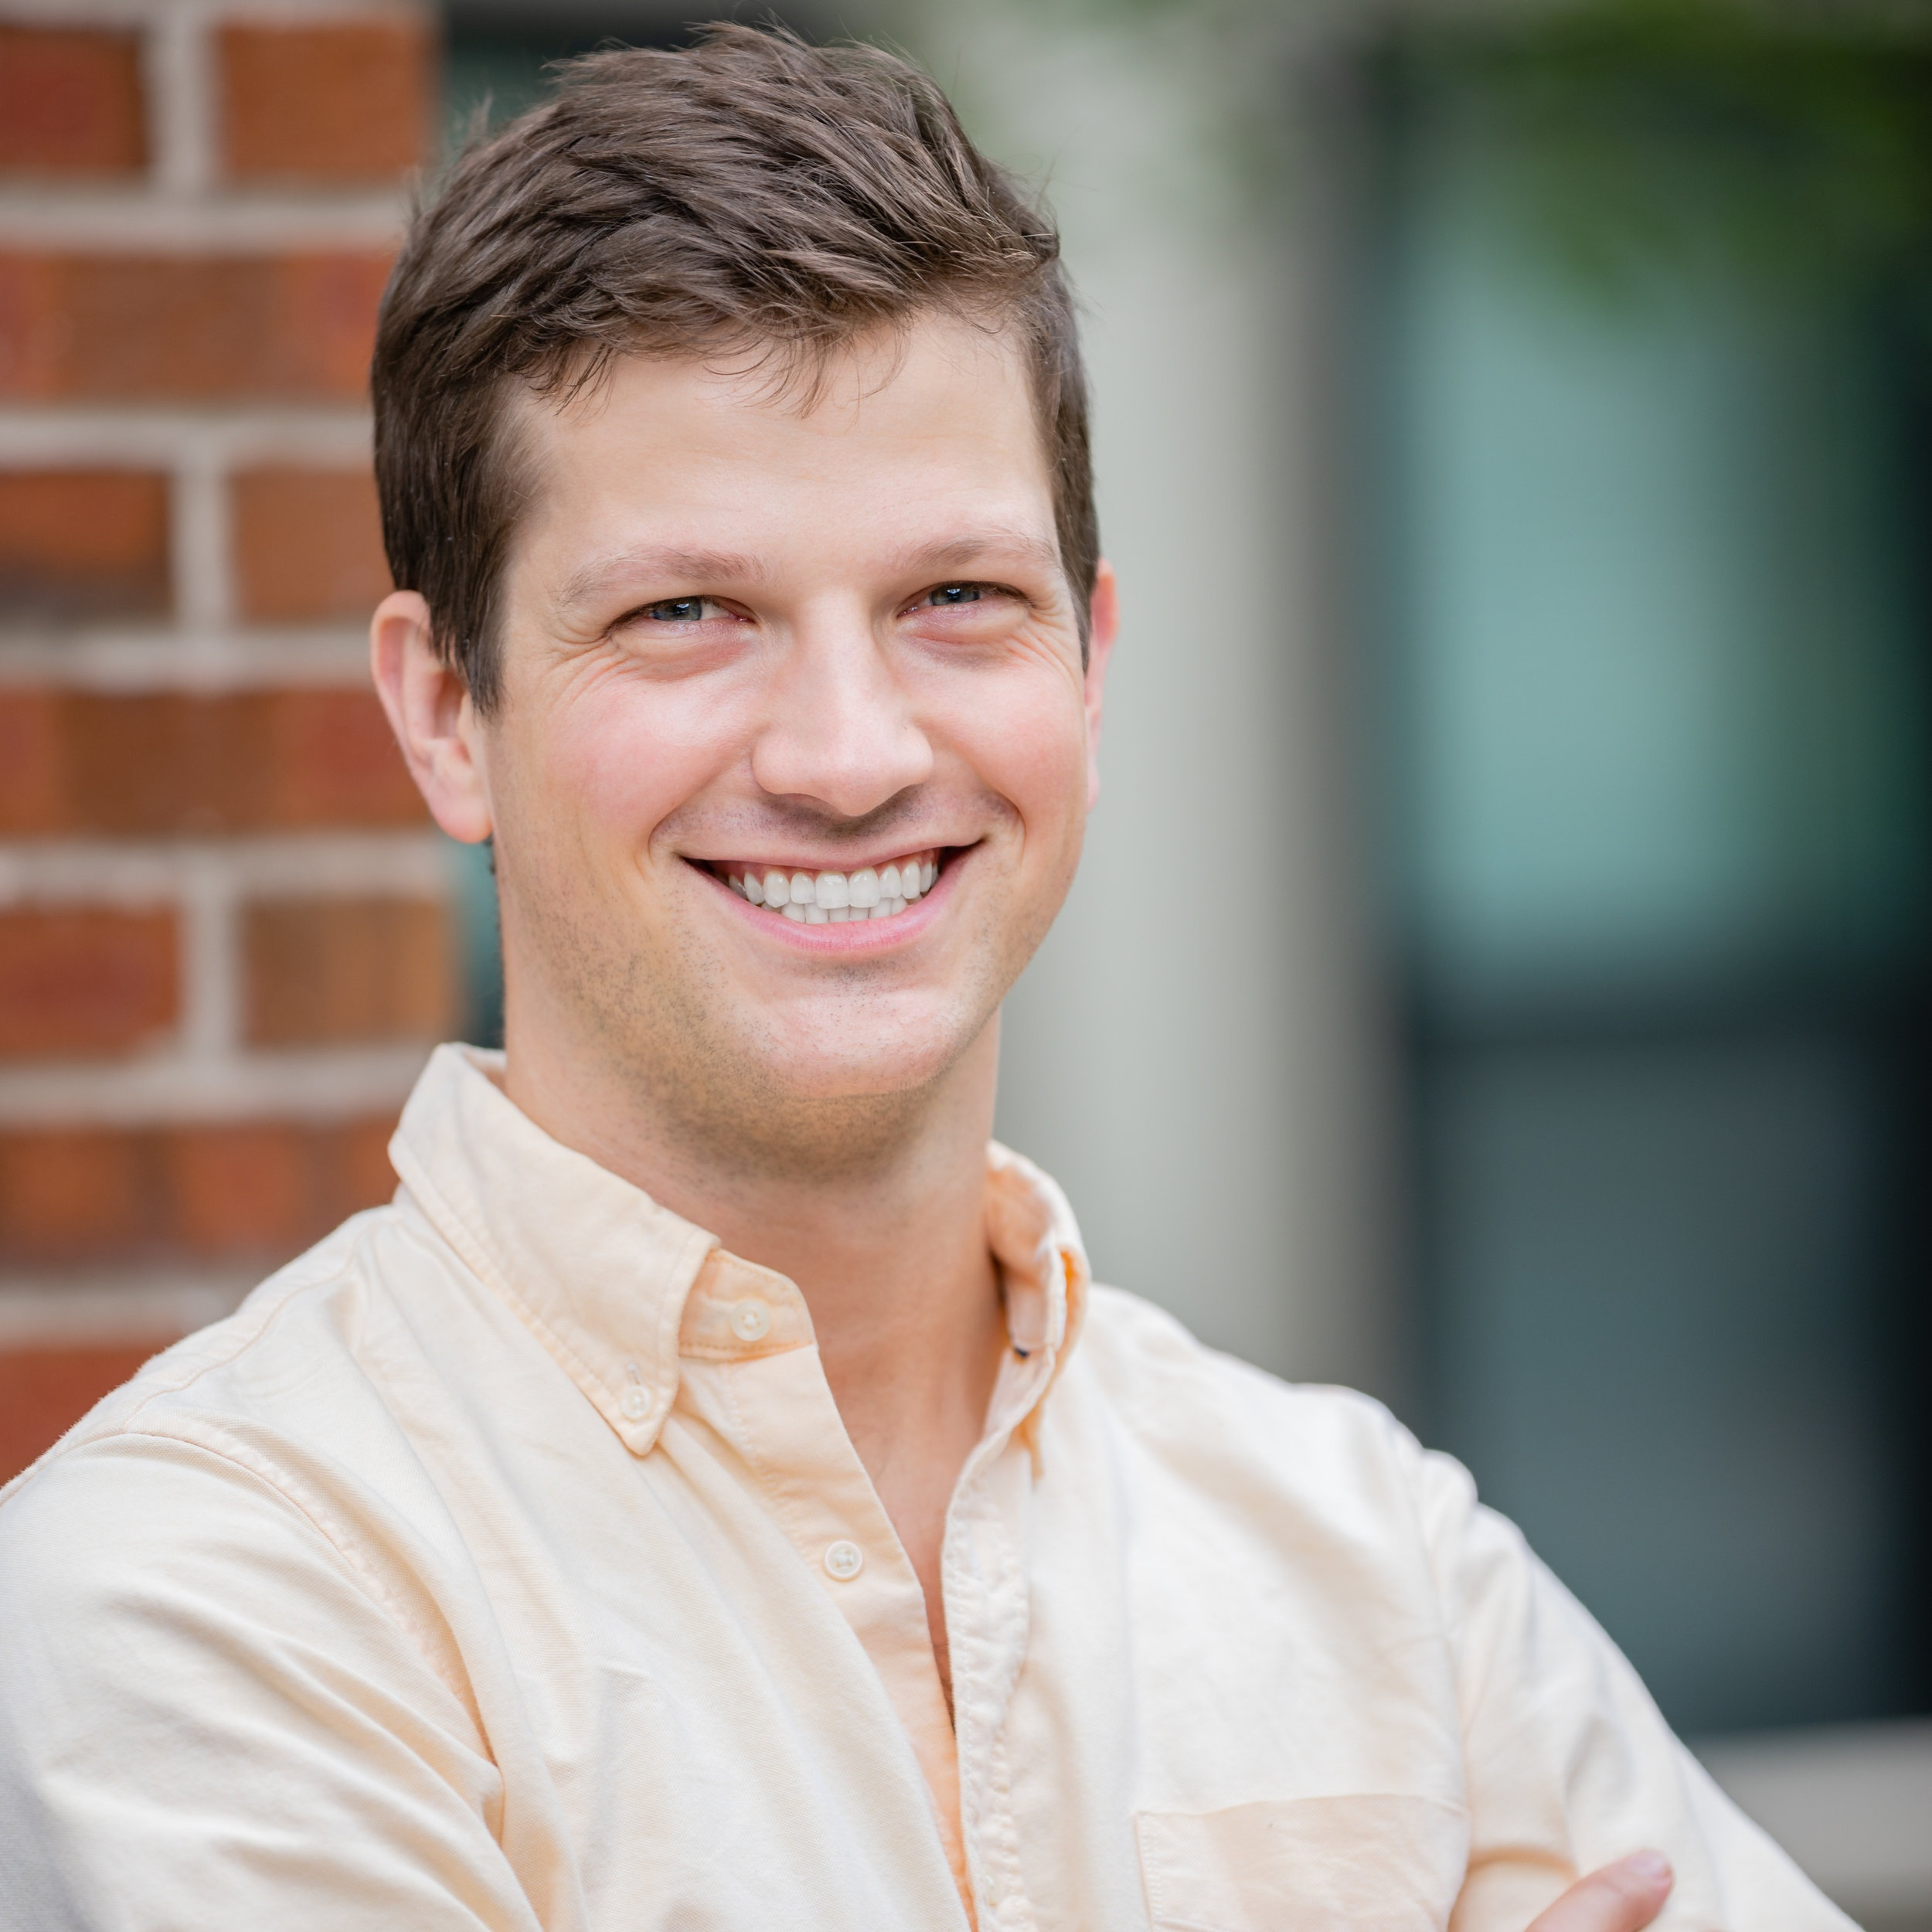 Will Monson   Will joined HRI/CNAHS as a Project Manager in July 2017 as part of the 2017-19 Kuehn Fellowship program. While at HRI/CNAHS, he has helped with several projects in Cambridge: the rehabilitation and financing of Auburn Park (60 units), the financing of Concord Highlands (98 units, new construction), and the financing and rehabilitation of 808 Memorial Drive (300 units).  Will received his Master in City Planning degree from MIT, focusing on Housing, Community, and Economic Development. He was involved in the Federal Home Loan Bank of Boston Affordable Housing Development Competition, both as a participant in 2016 and a student coordinator in 2017. Prior to HRI/CNAHS and grad school, he worked as a research associate at the Urban Institute in Washington, D.C. and received his BA in Economics from Wesleyan University. He also plays saxophone in a band of urban planners.